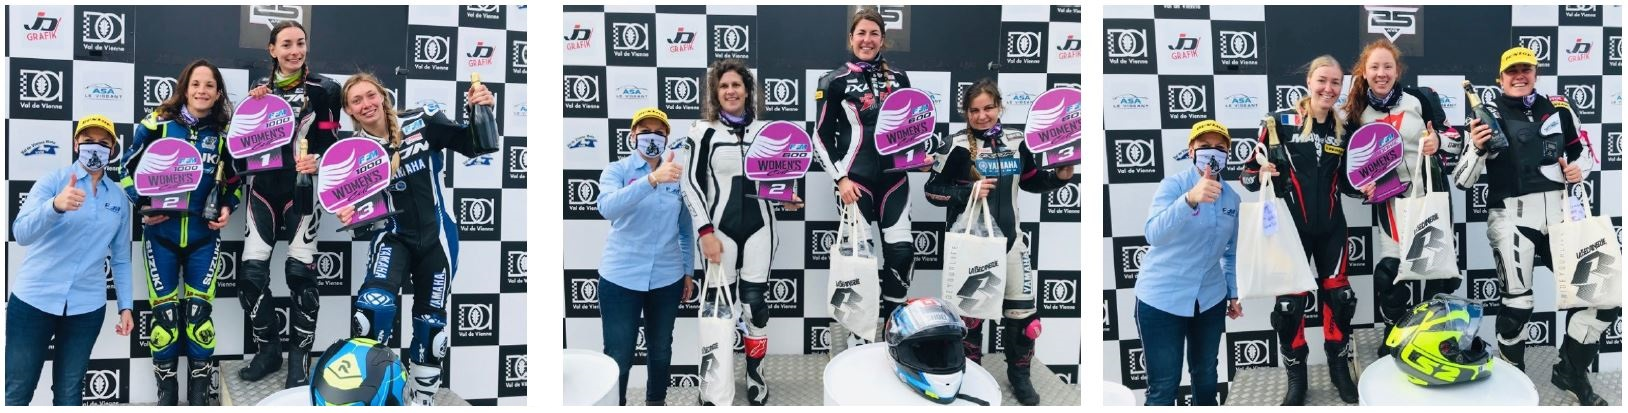 Podiums Women's Cup 2020 au Vigeant ©Aline Boury